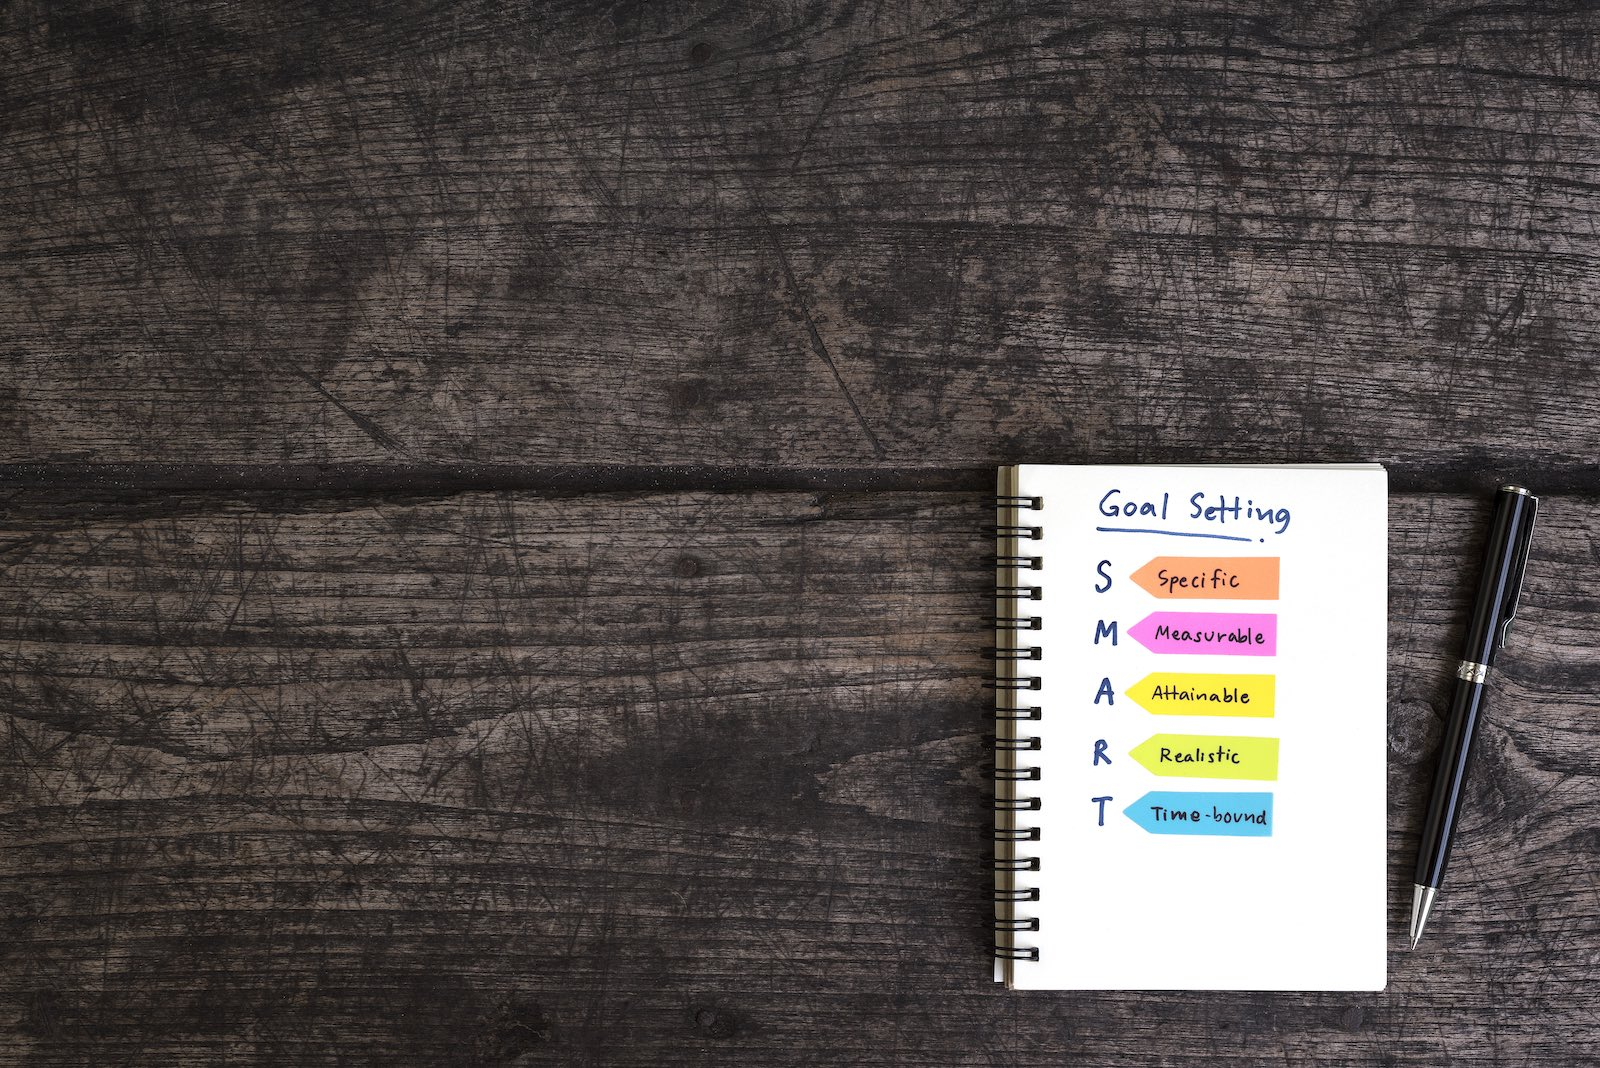 Setting Goals — Keep it Simple and Focused